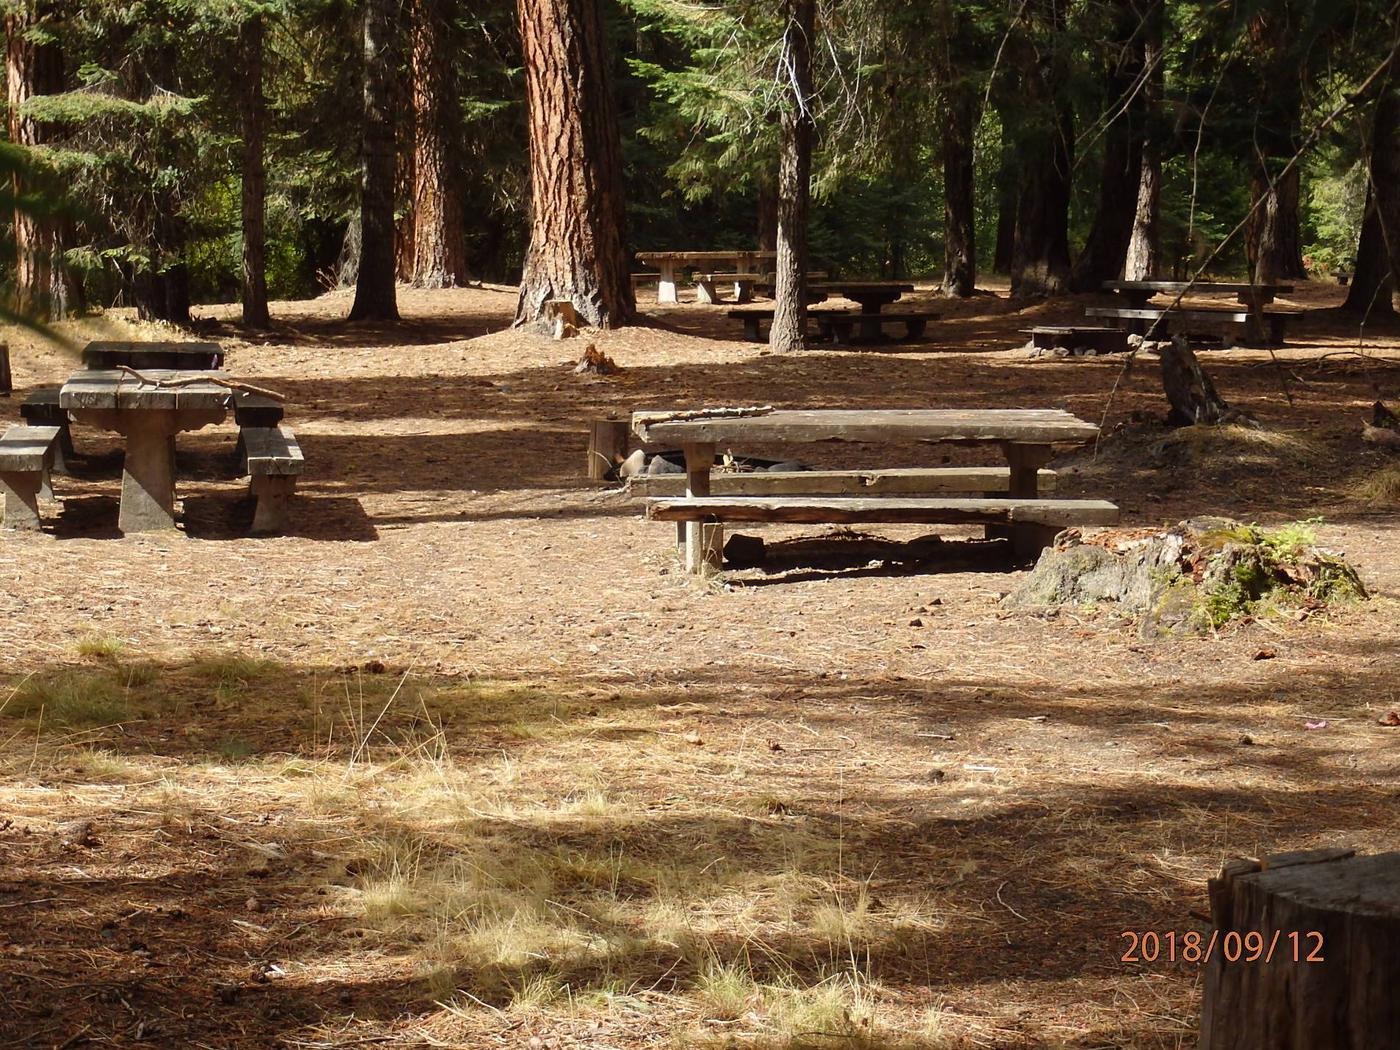 Kaner Flat Group SiteNice group site with access to the Little Naches River